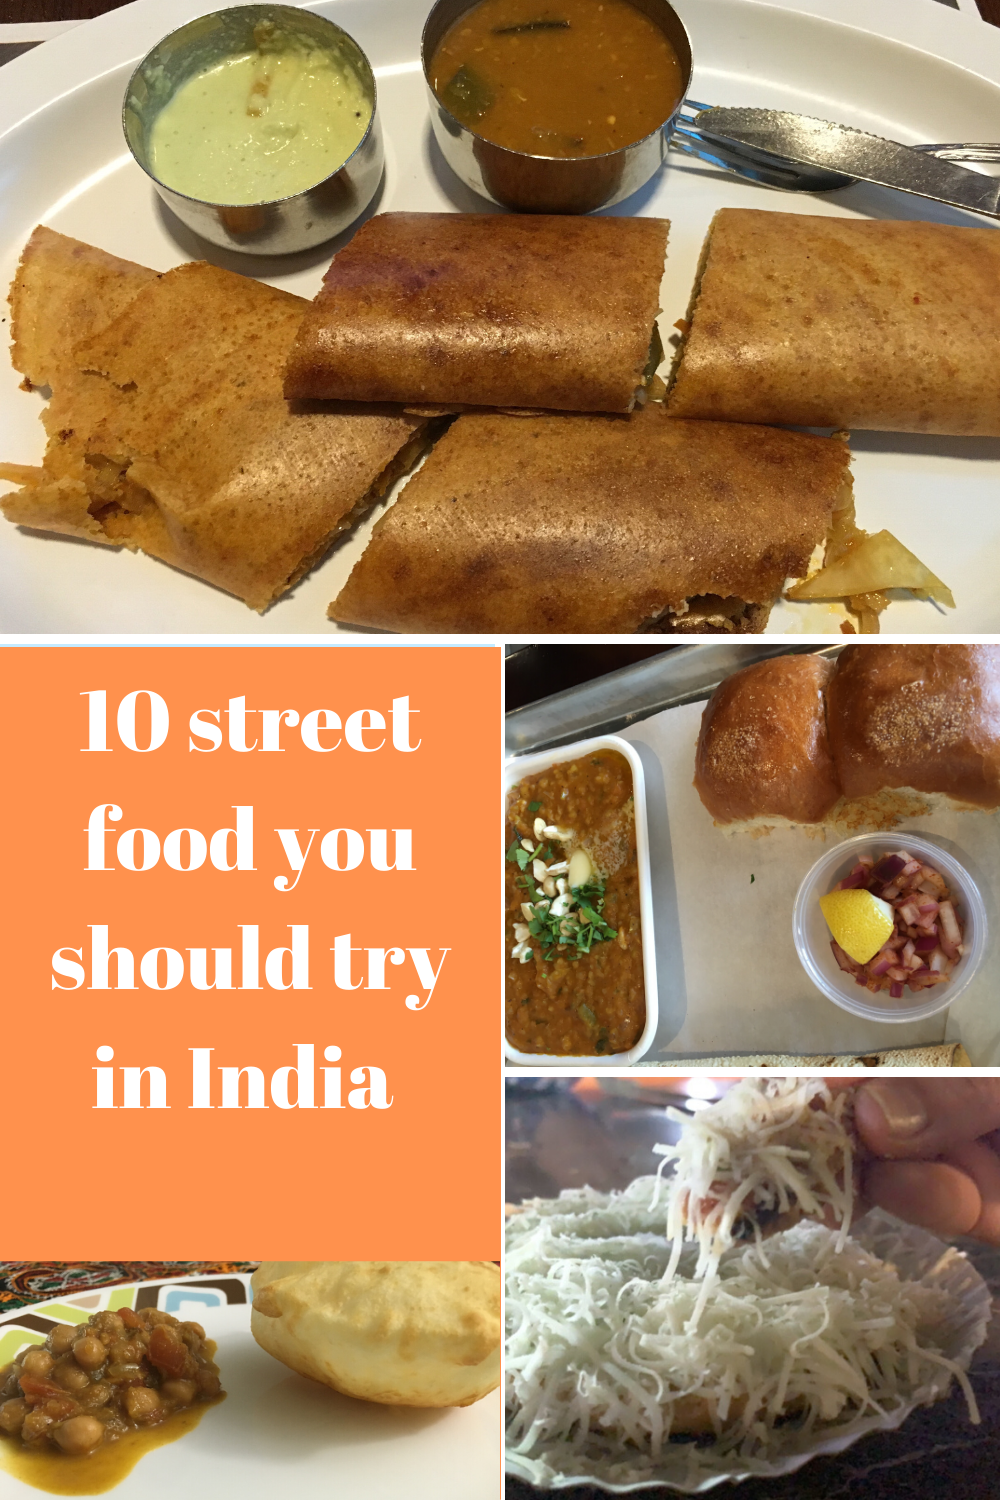 Must try this street foods during your india trip